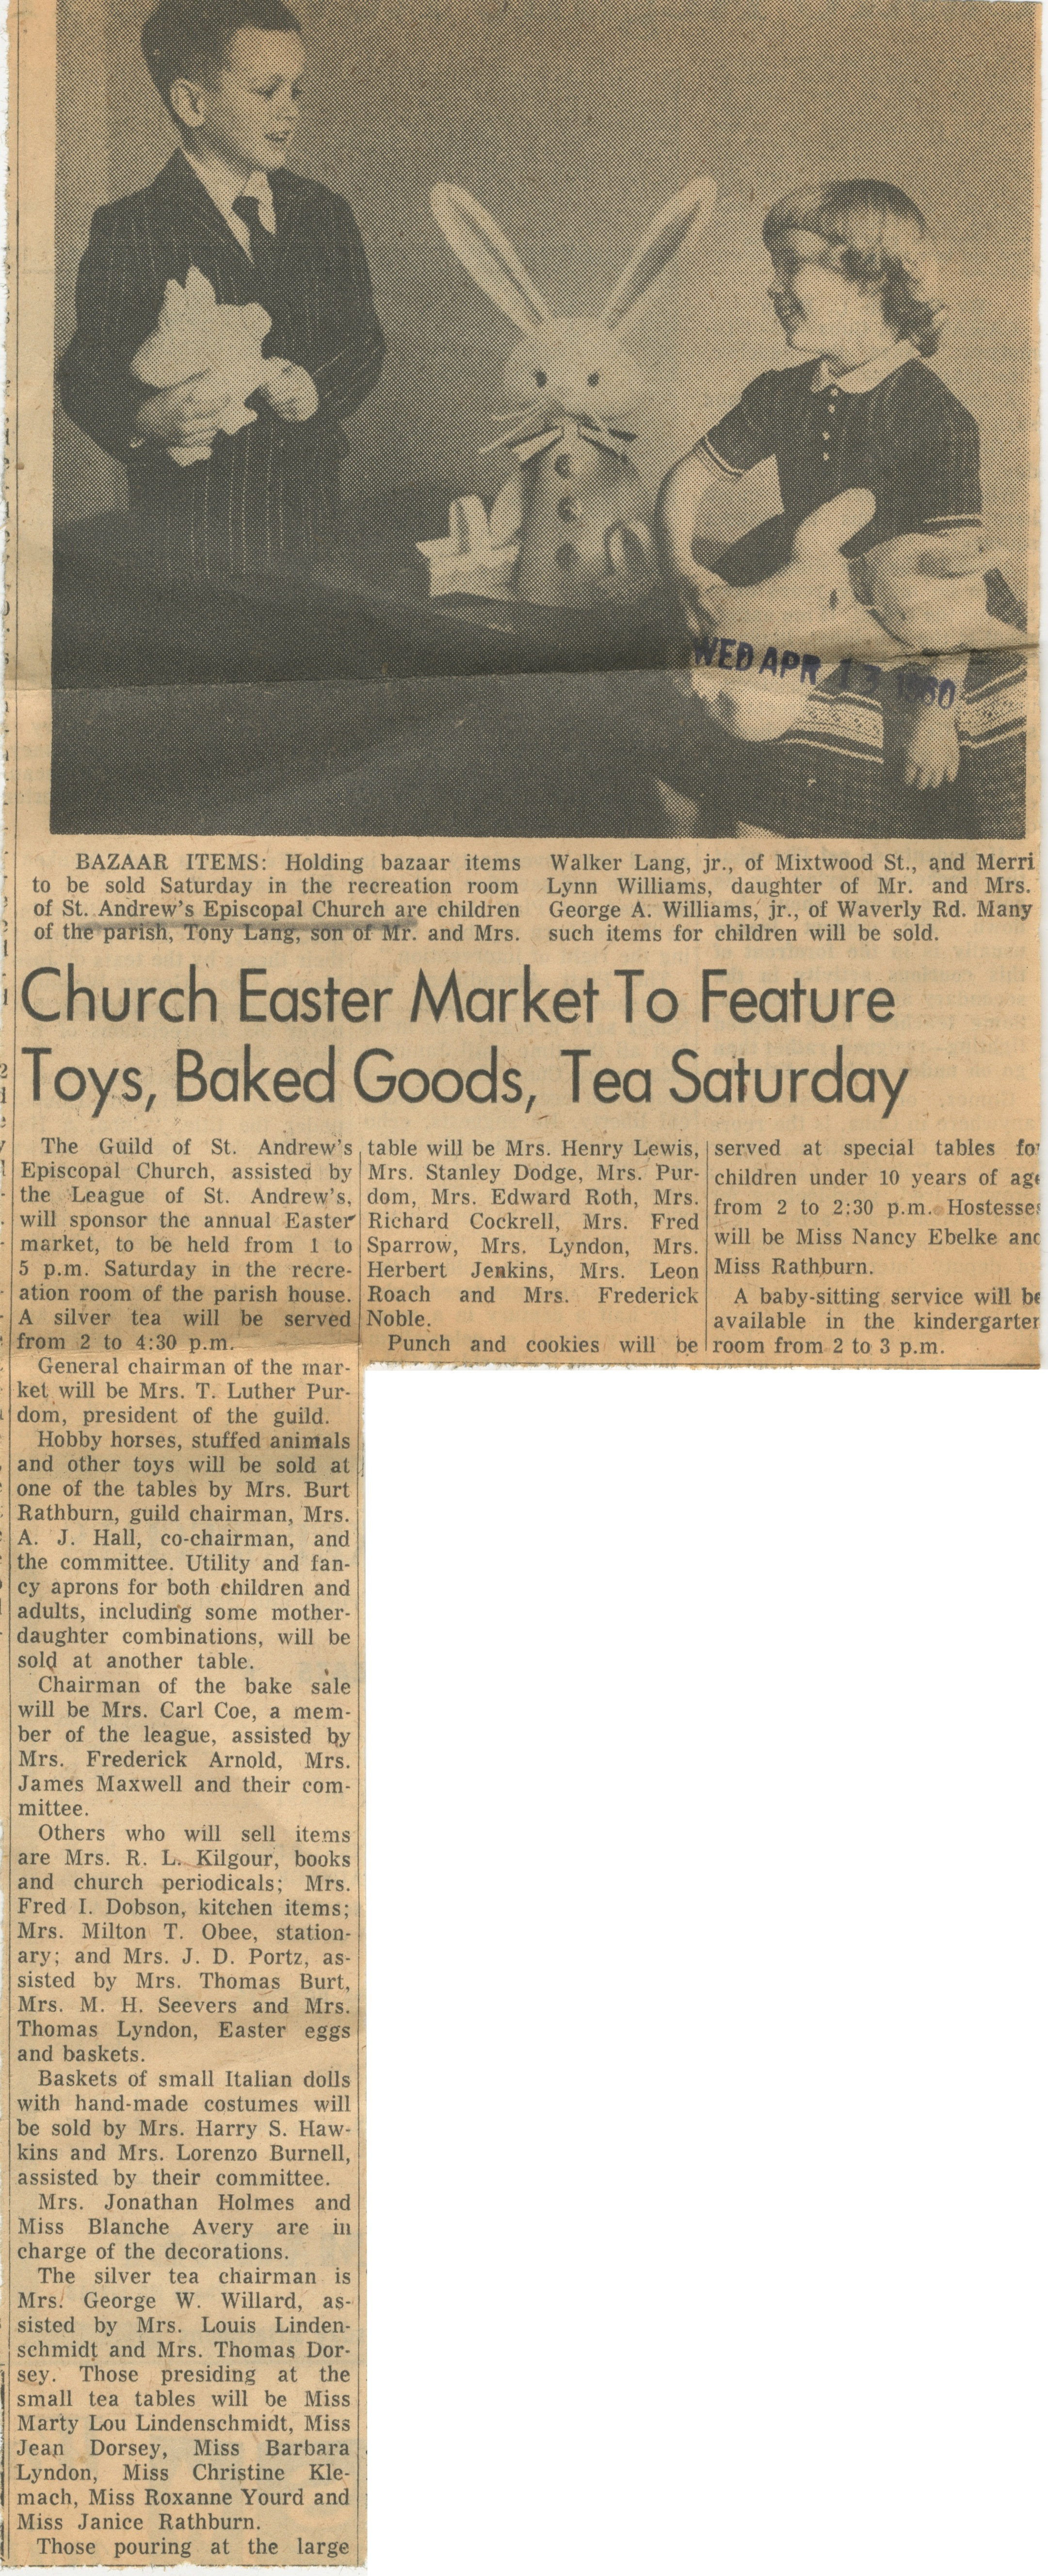 Church Easter Market To Feature Toys, Baked Goods, Tea Saturday image